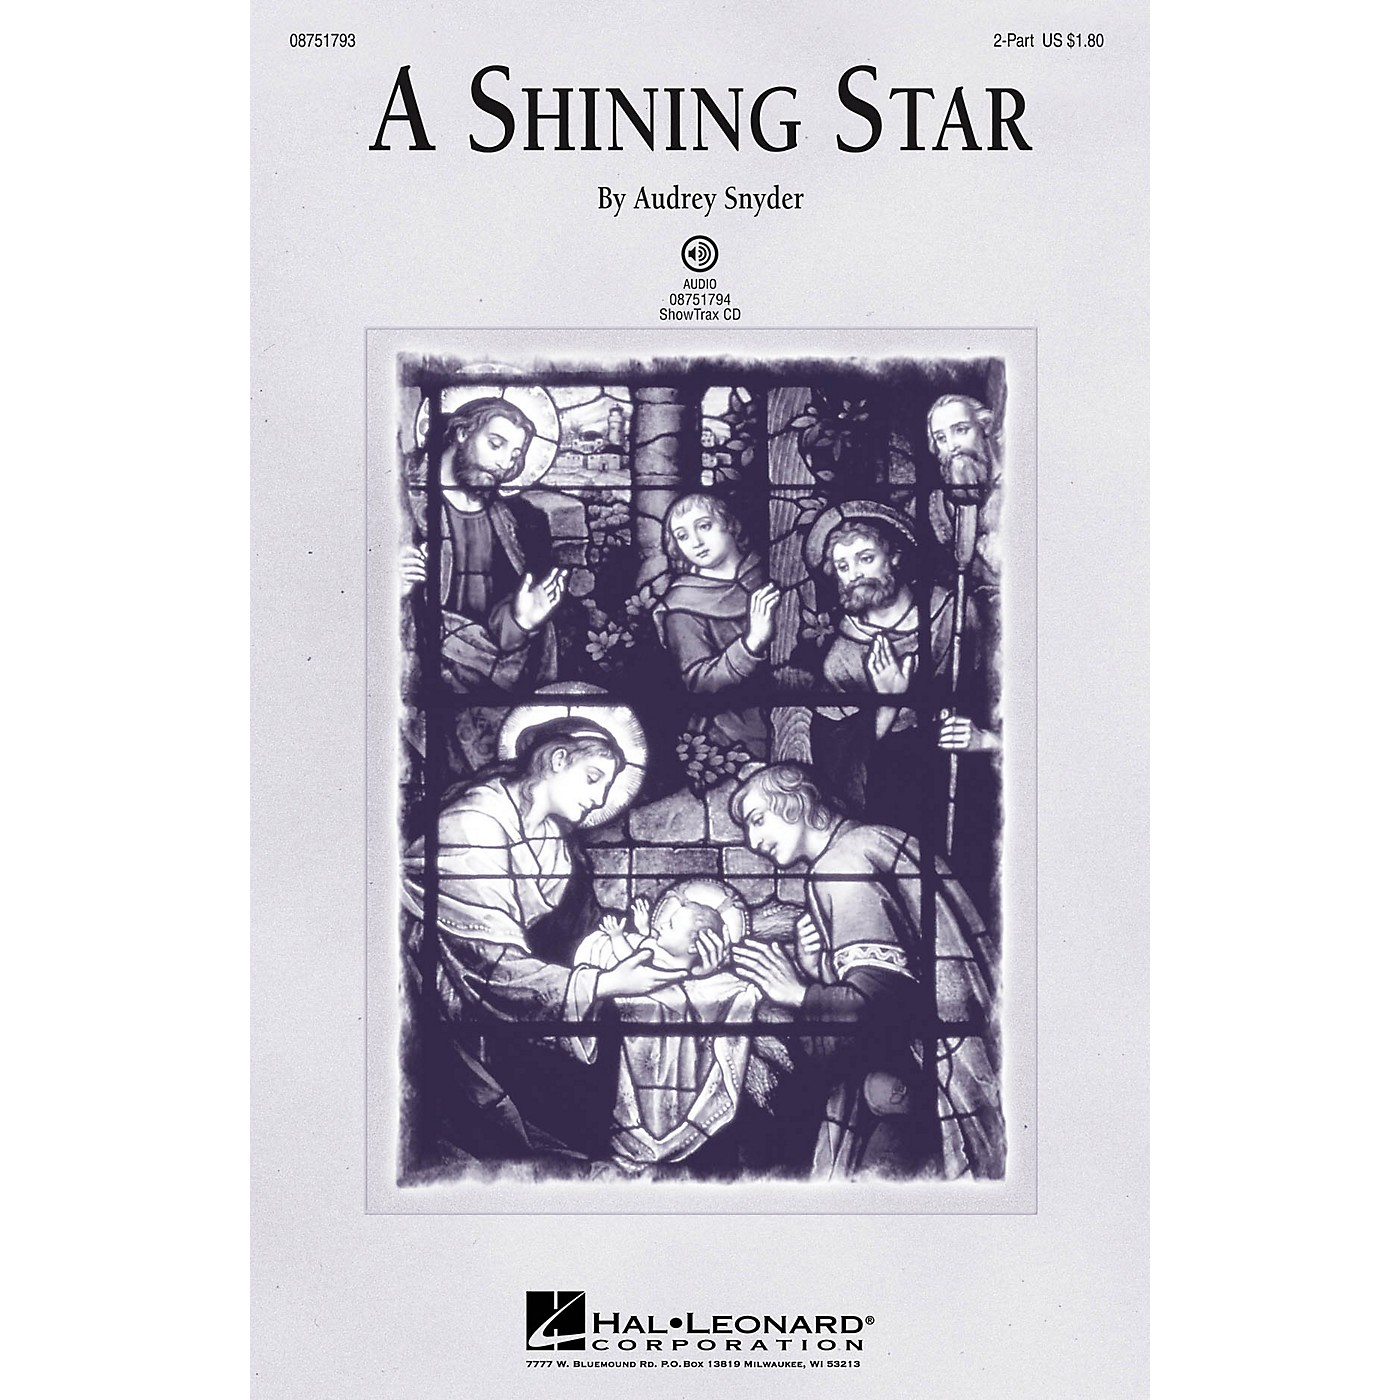 Hal Leonard A Shining Star 2-Part composed by Audrey Snyder thumbnail